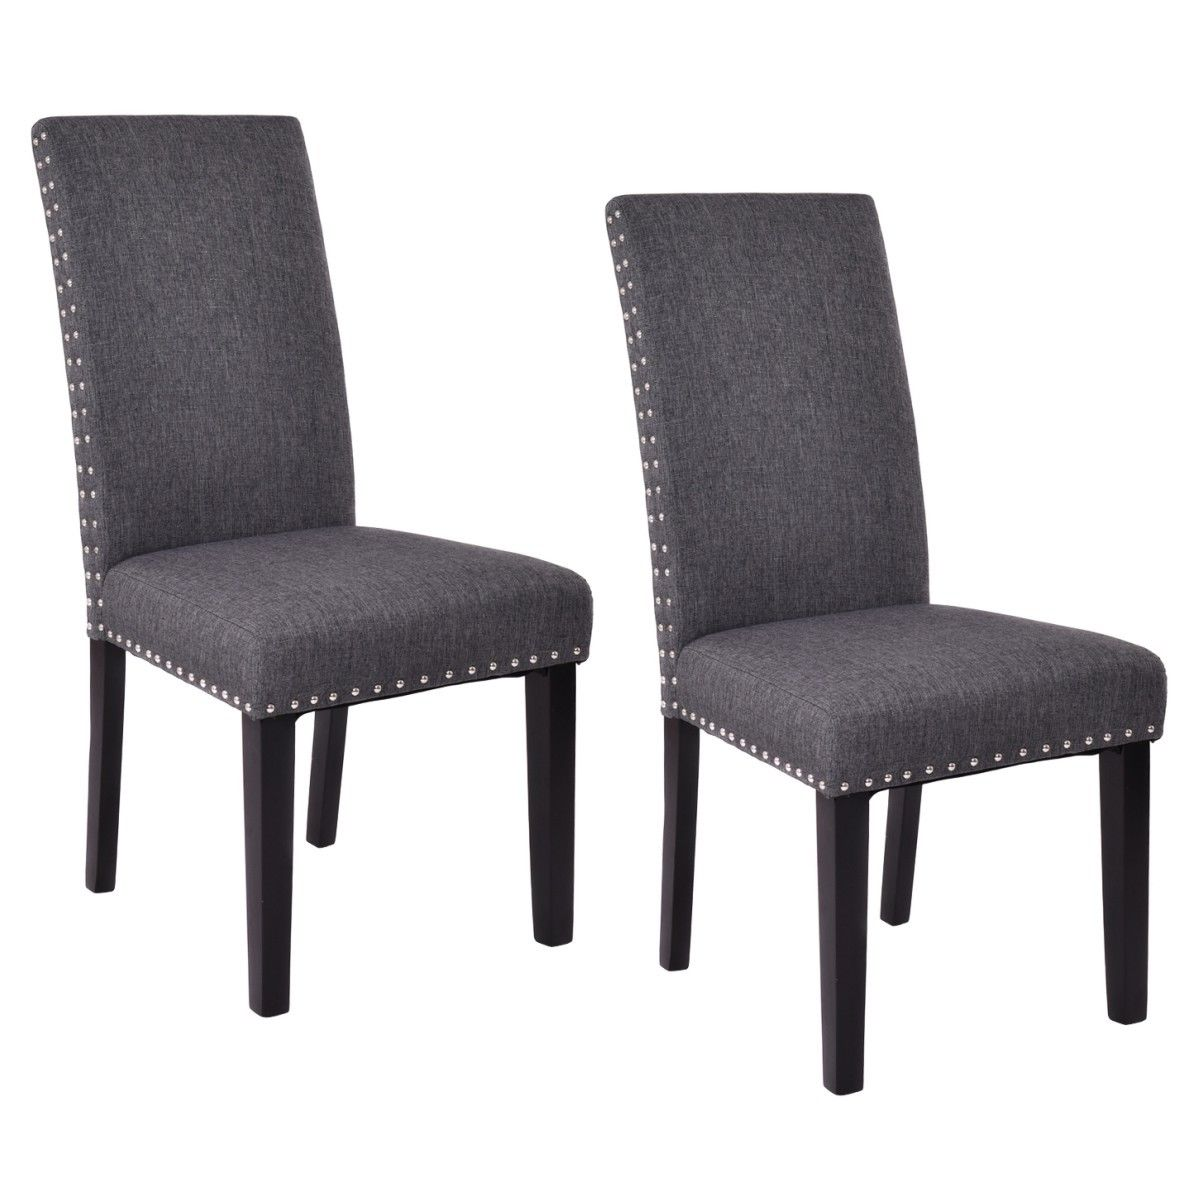 Costway Set of 2 Dining Chairs Fabric Upholstered Armless Accent Home Kitchen Furniture - Walmart.com  sc 1 st  Walmart & Costway Set of 2 Dining Chairs Fabric Upholstered Armless Accent ...